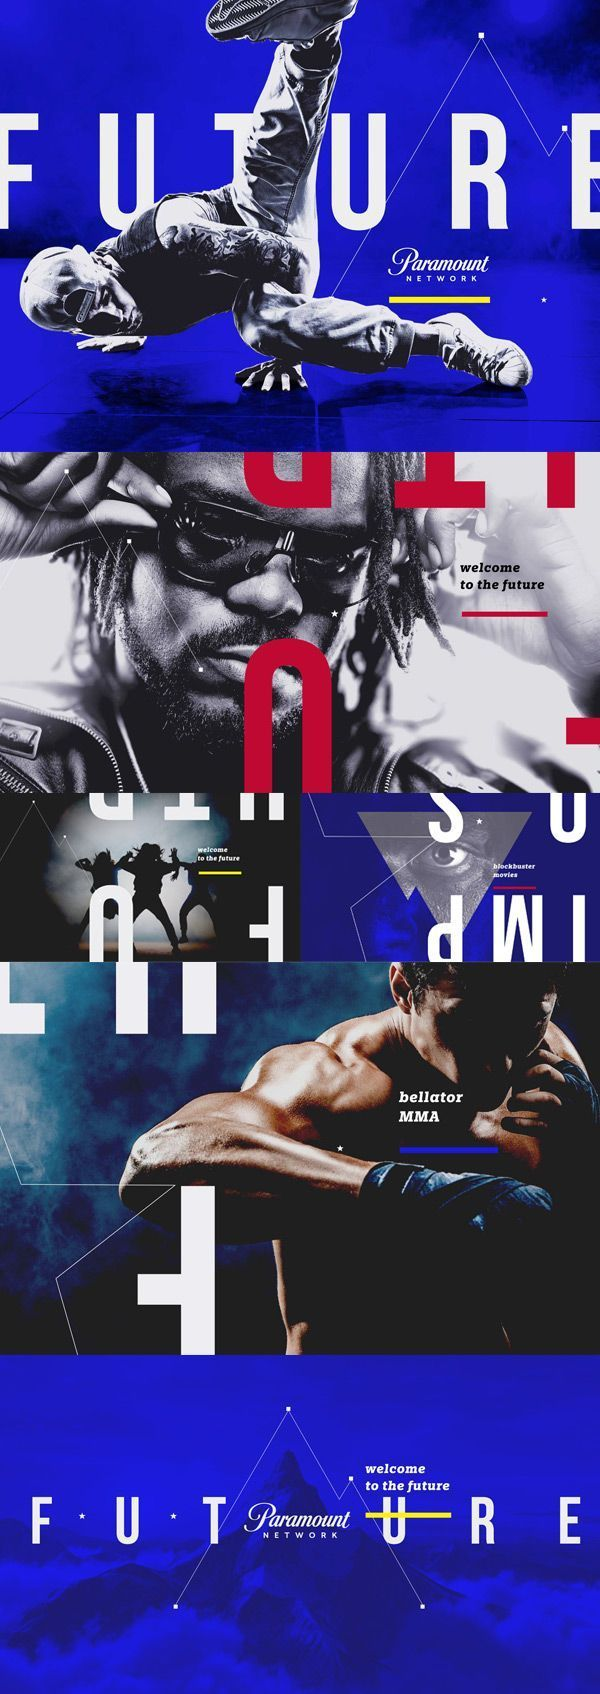 Design trends—Paramount Network needed an engaging and